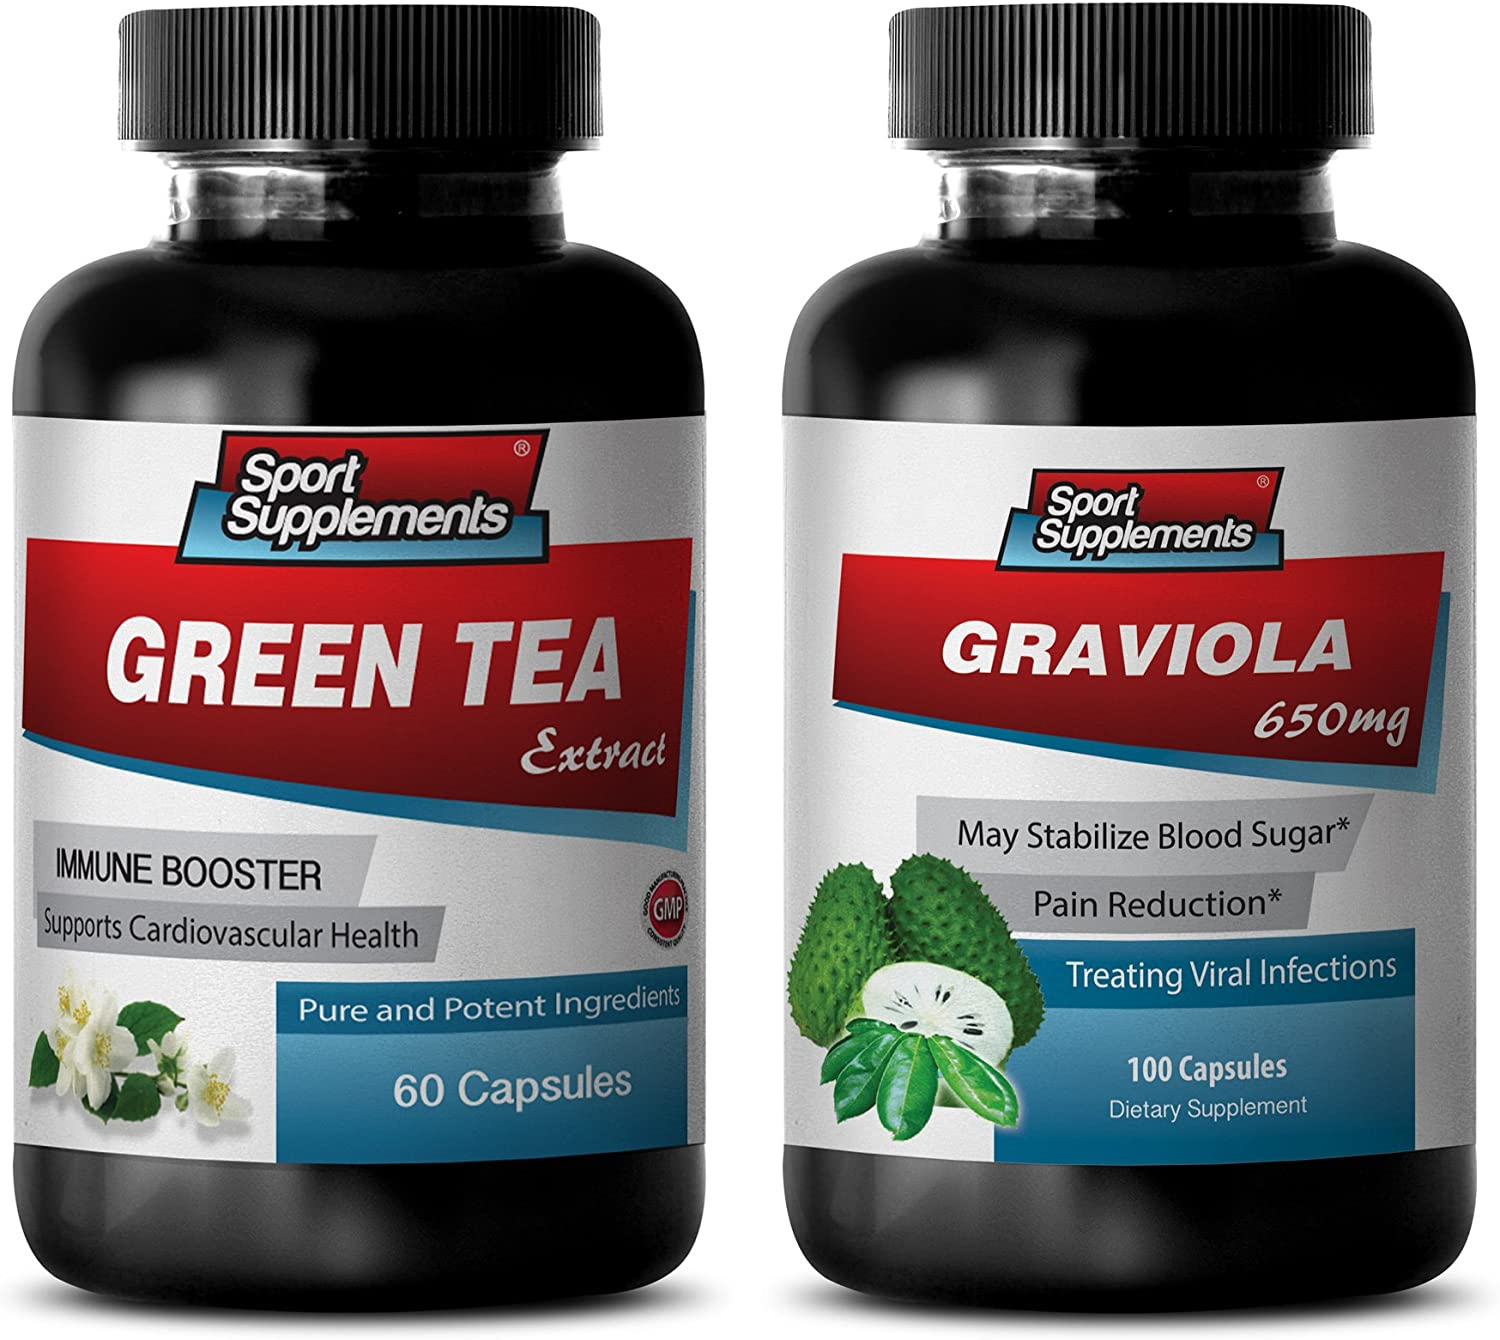 Fat Loss Capsules Easy-to-use - Green Challenge the lowest price of Japan GRAVIOLA Combo Suppl Tea